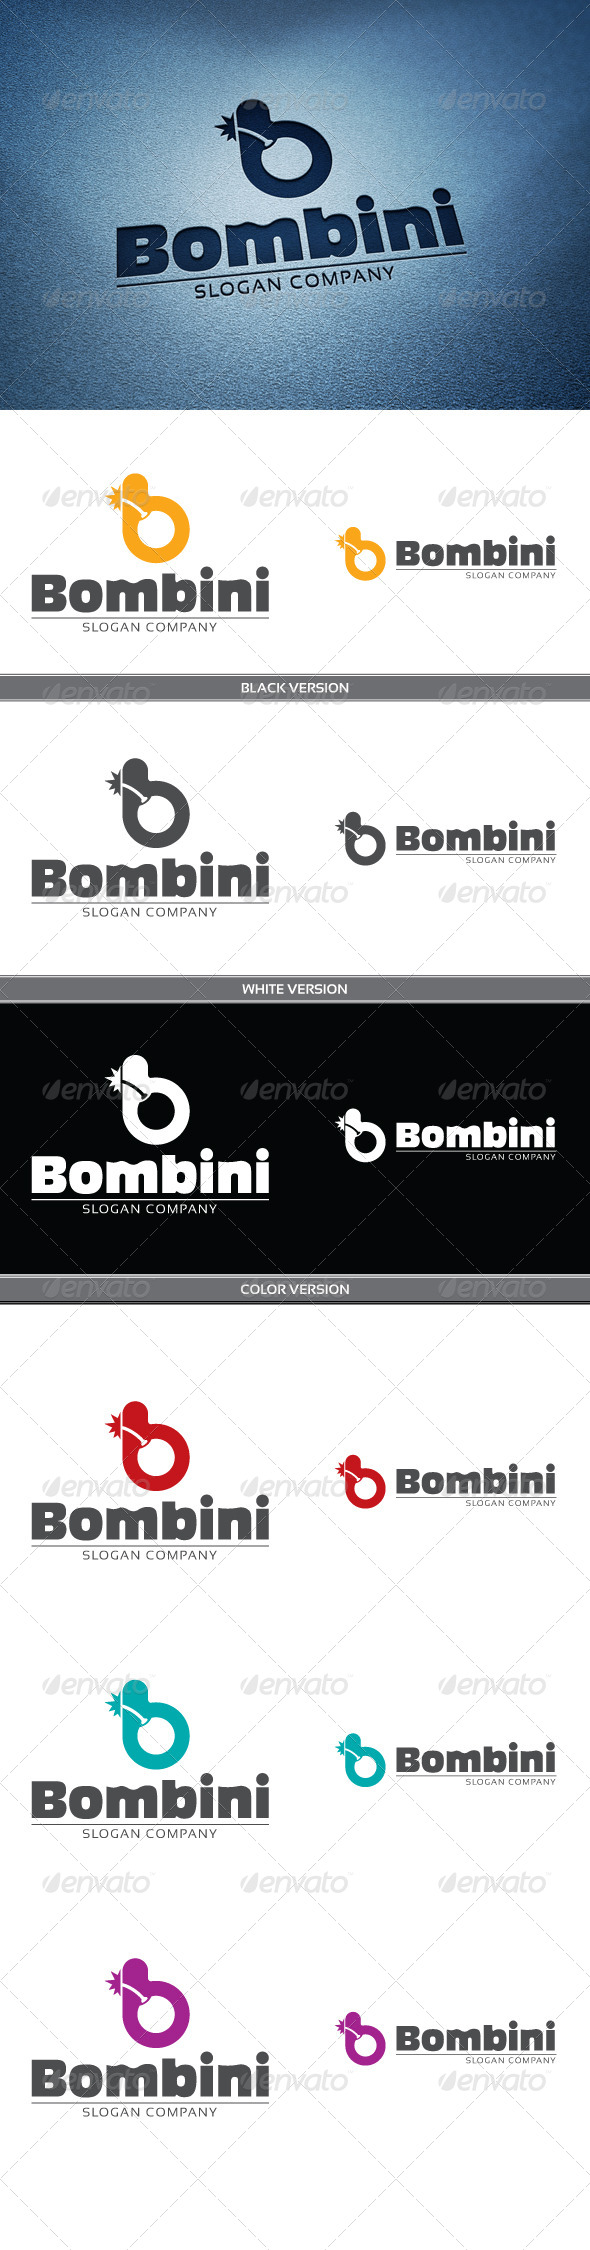 GraphicRiver Bombini 4303921